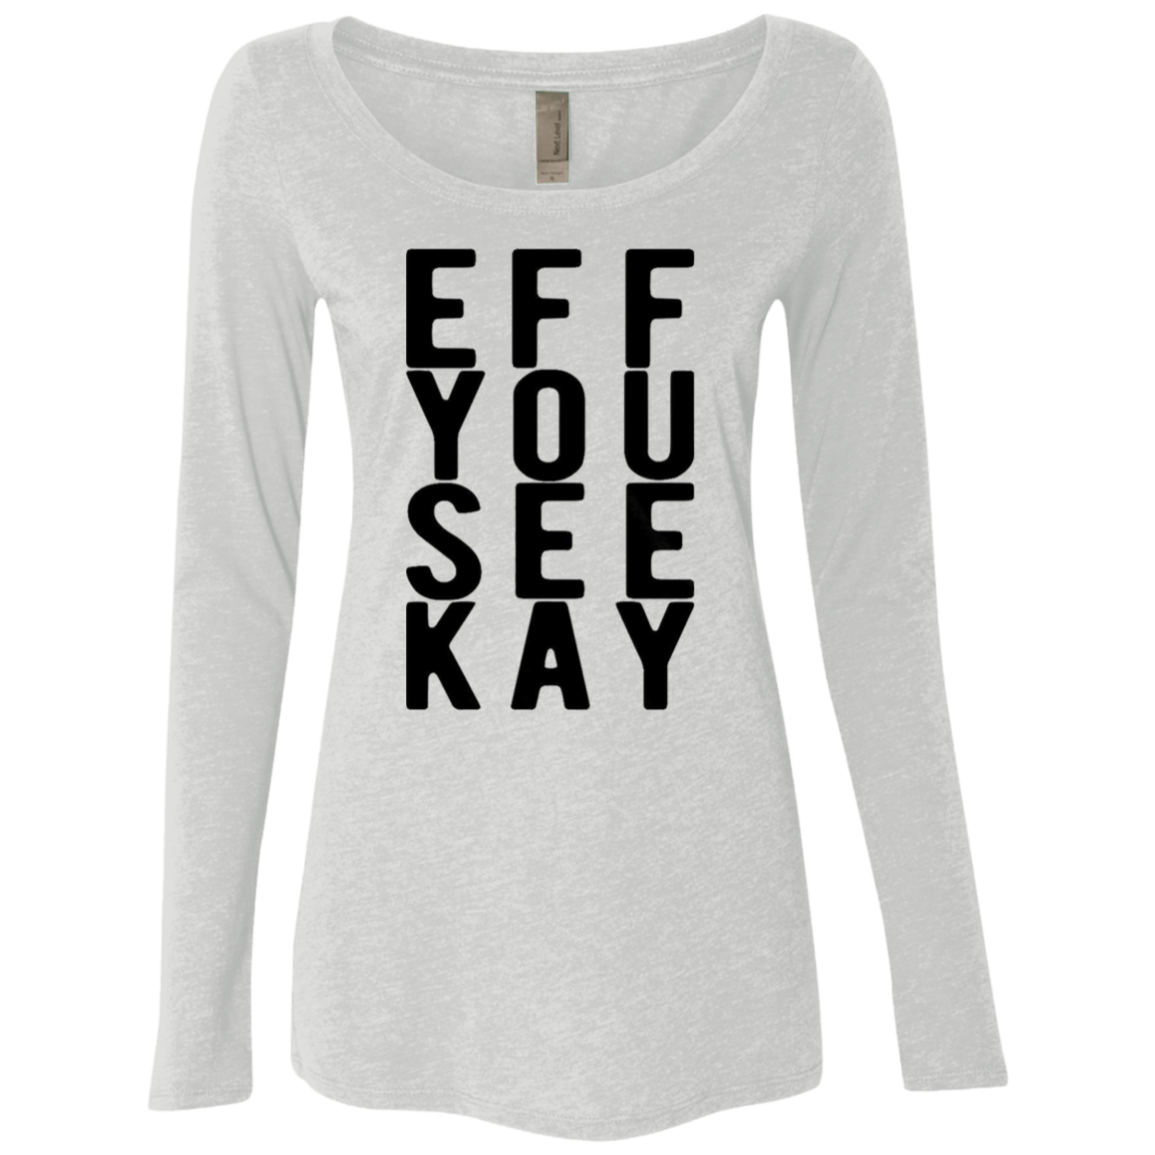 Eff You See Kay Women's Long Sleeve Tee